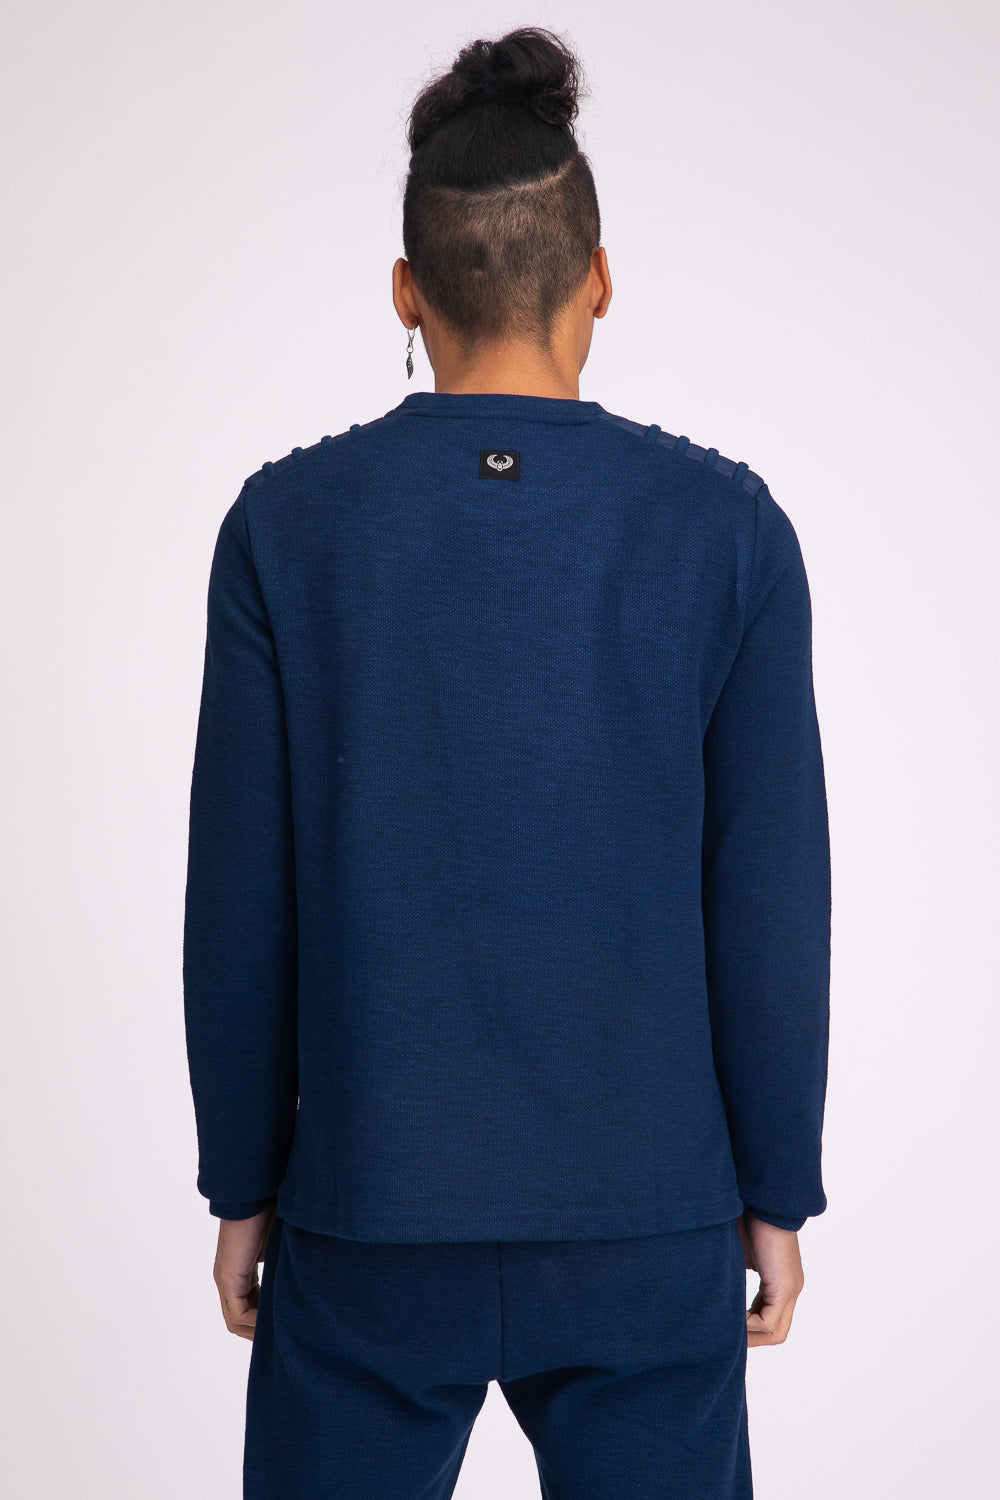 Style: Hedet 502 Charcoal Sweatshirt - Junq Couture